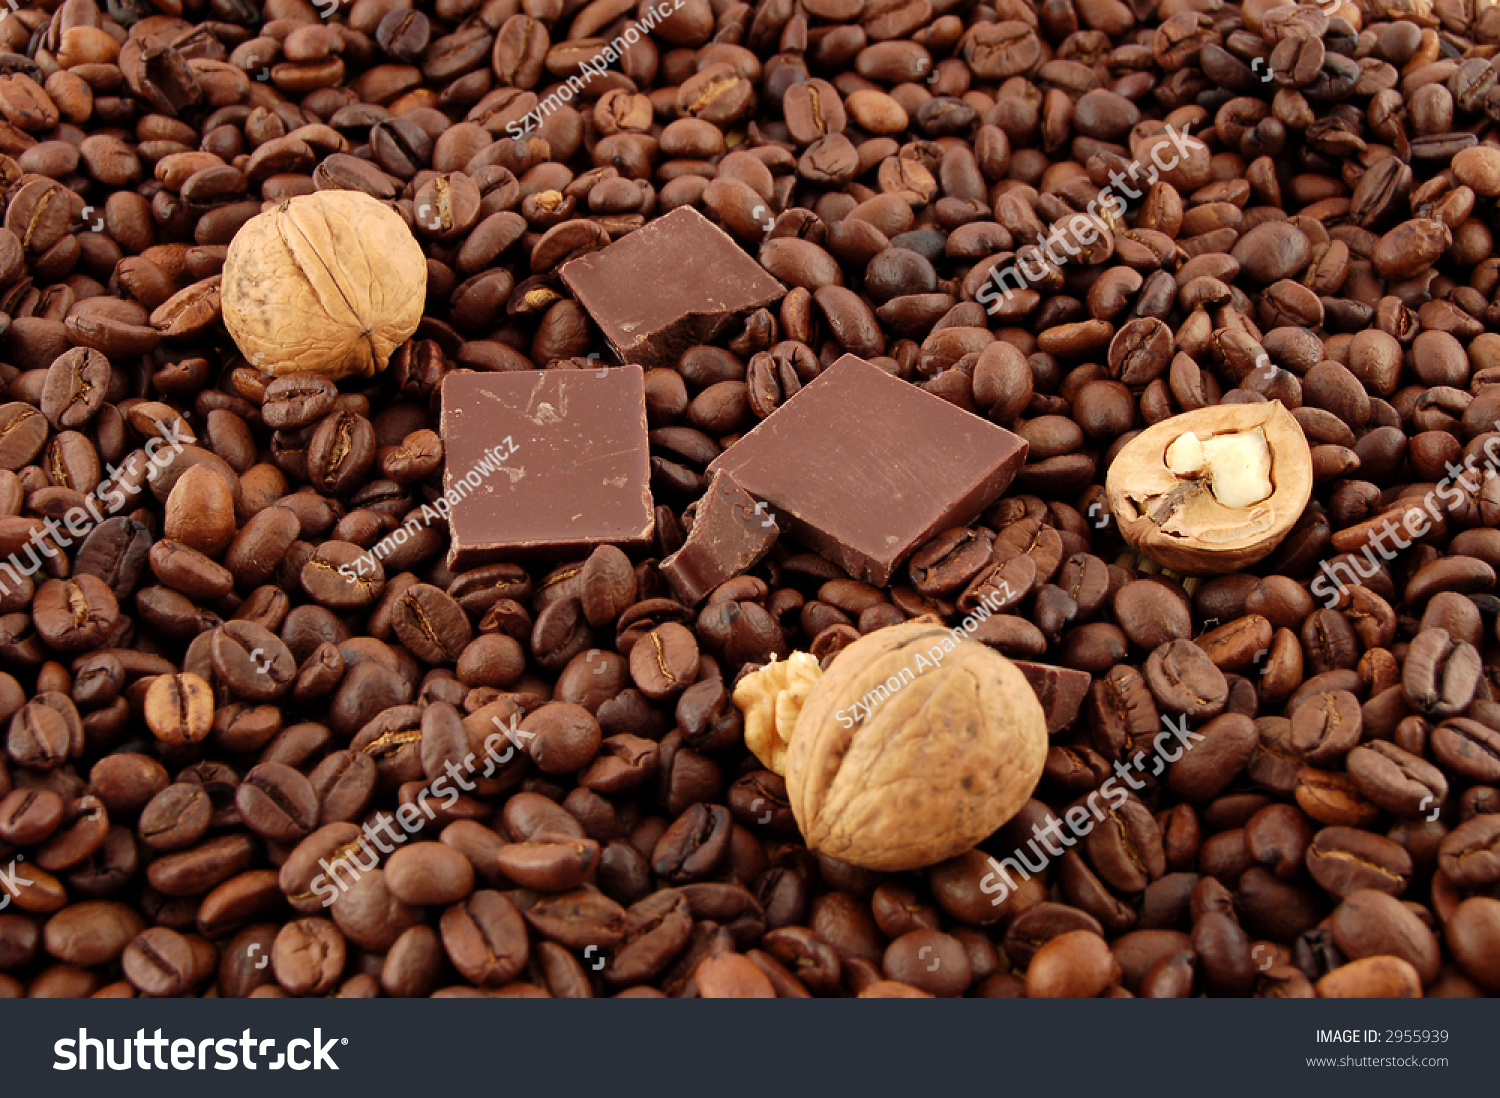 Coffee Beans, Walnuts And Chocolate Stock Photo 2955939 : Shutterstock